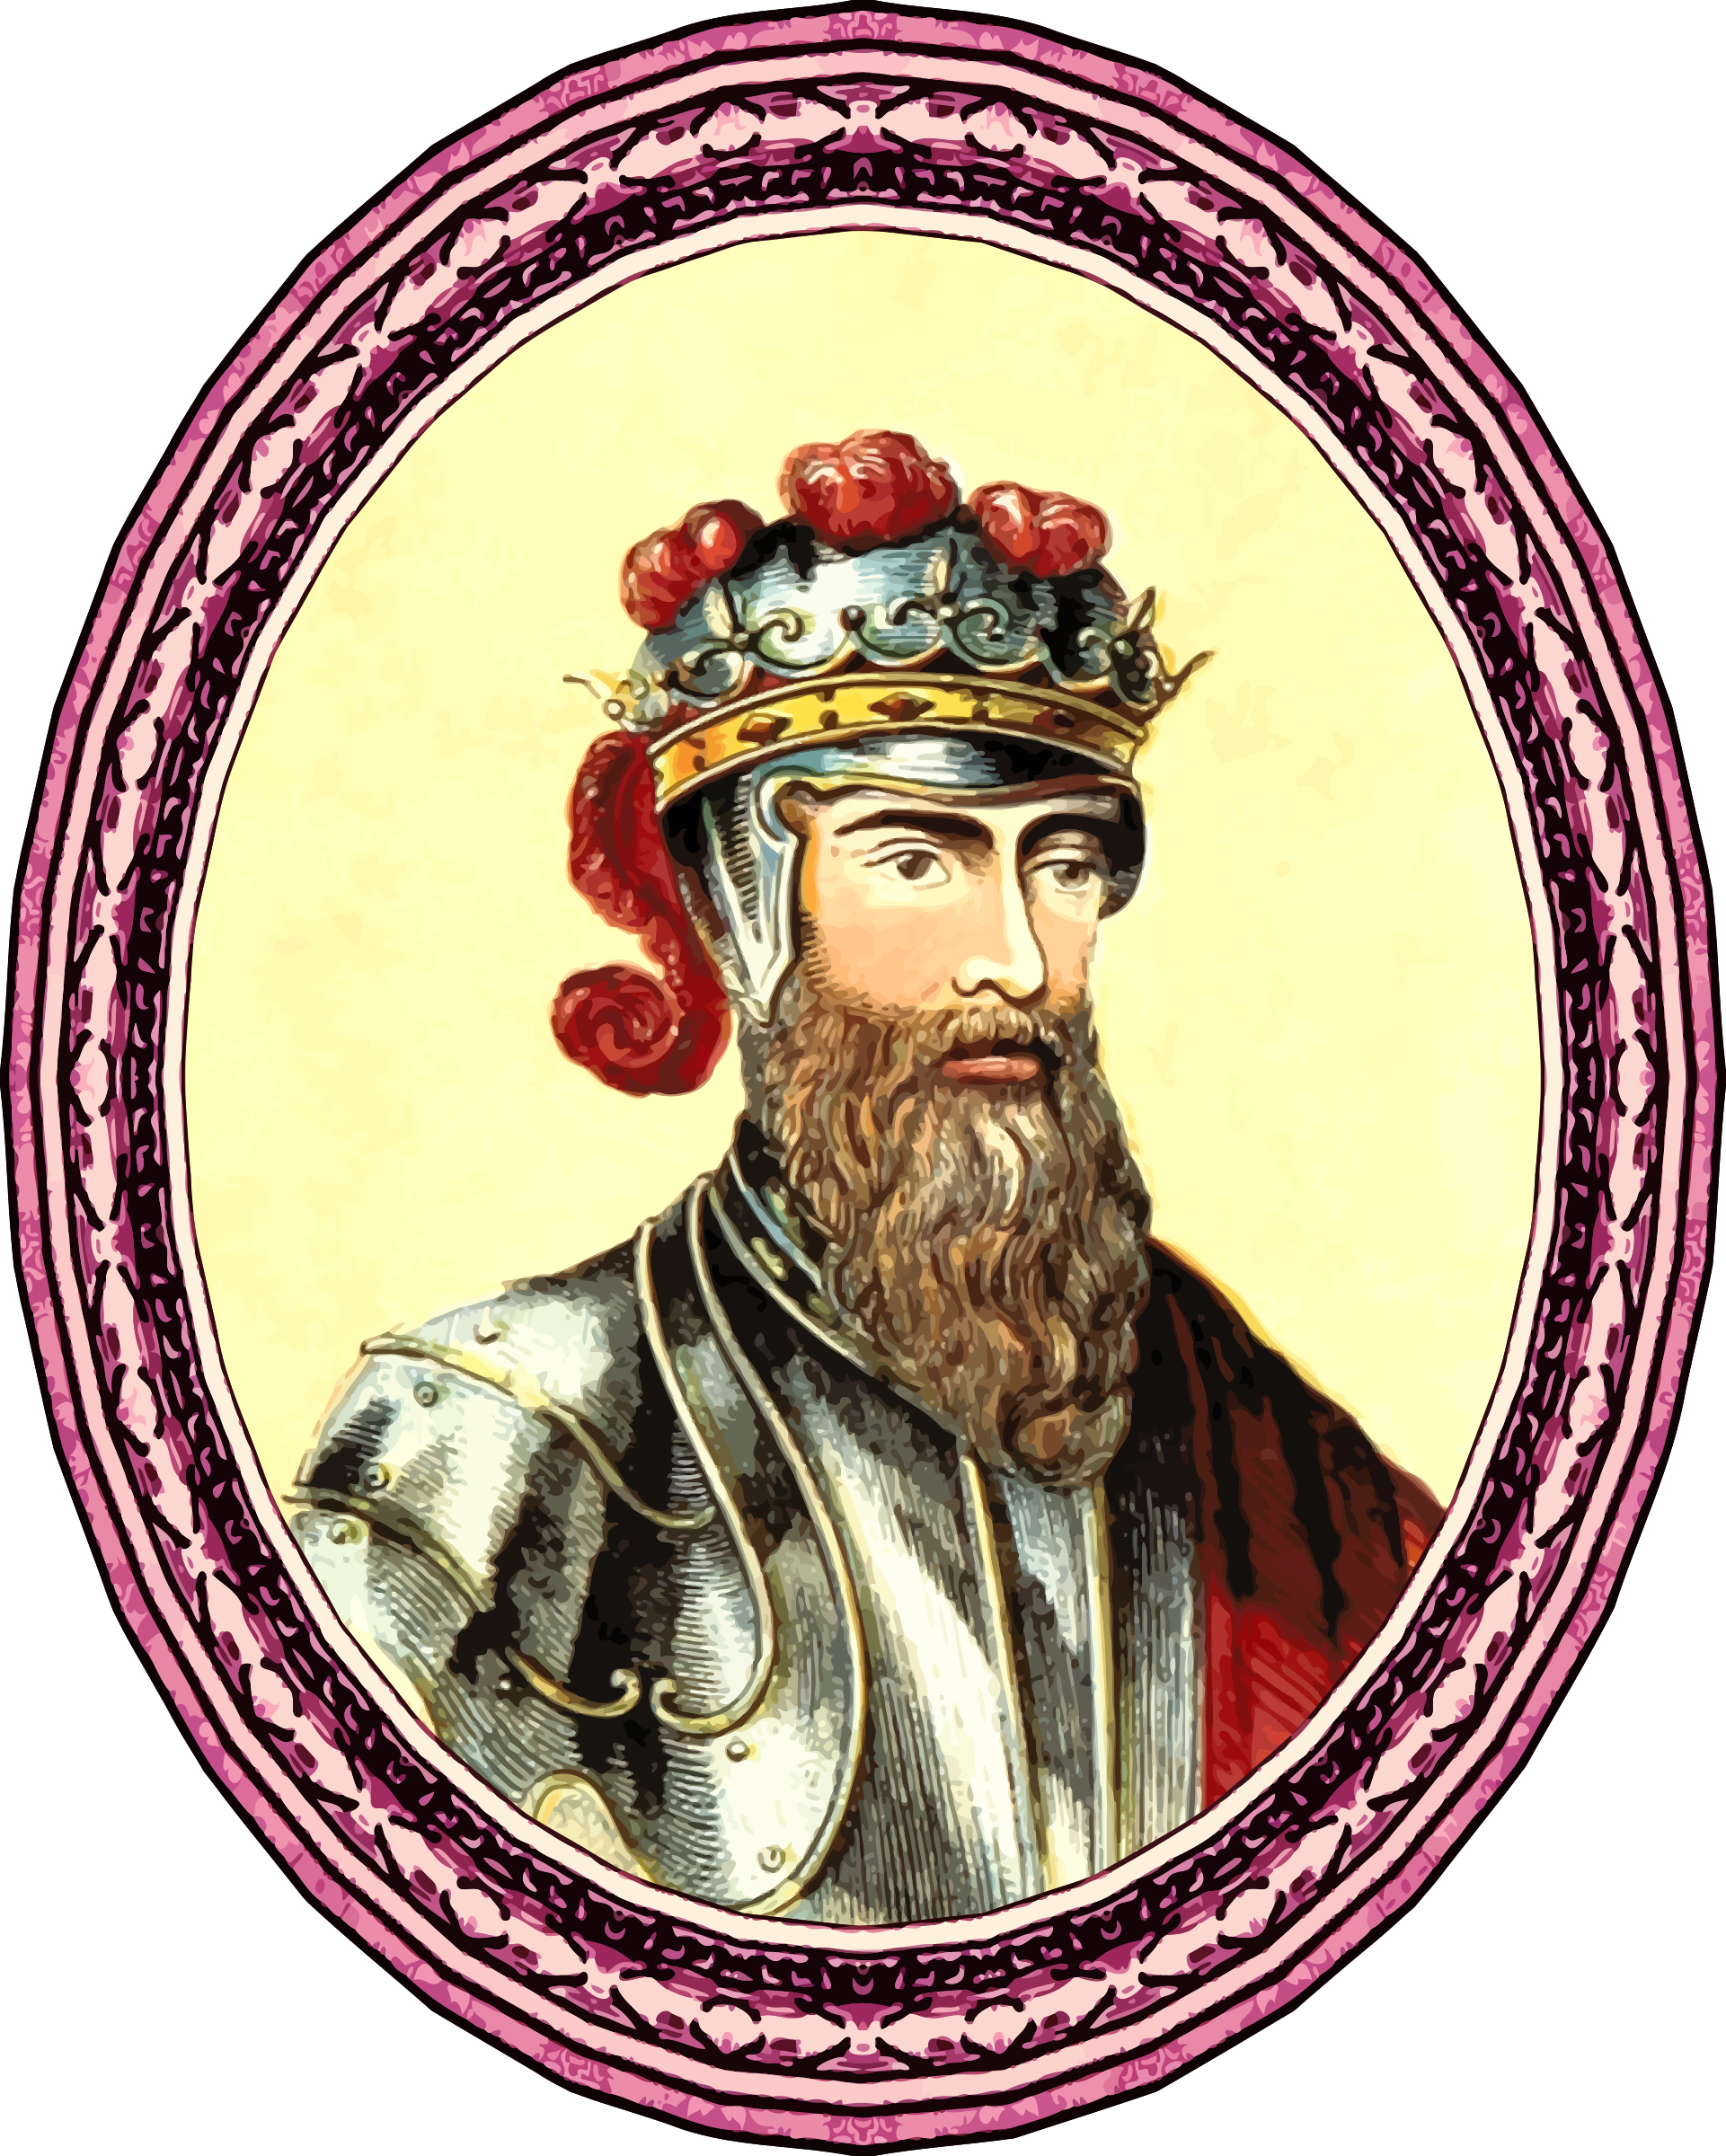 King Edward III (framed) by Firkin